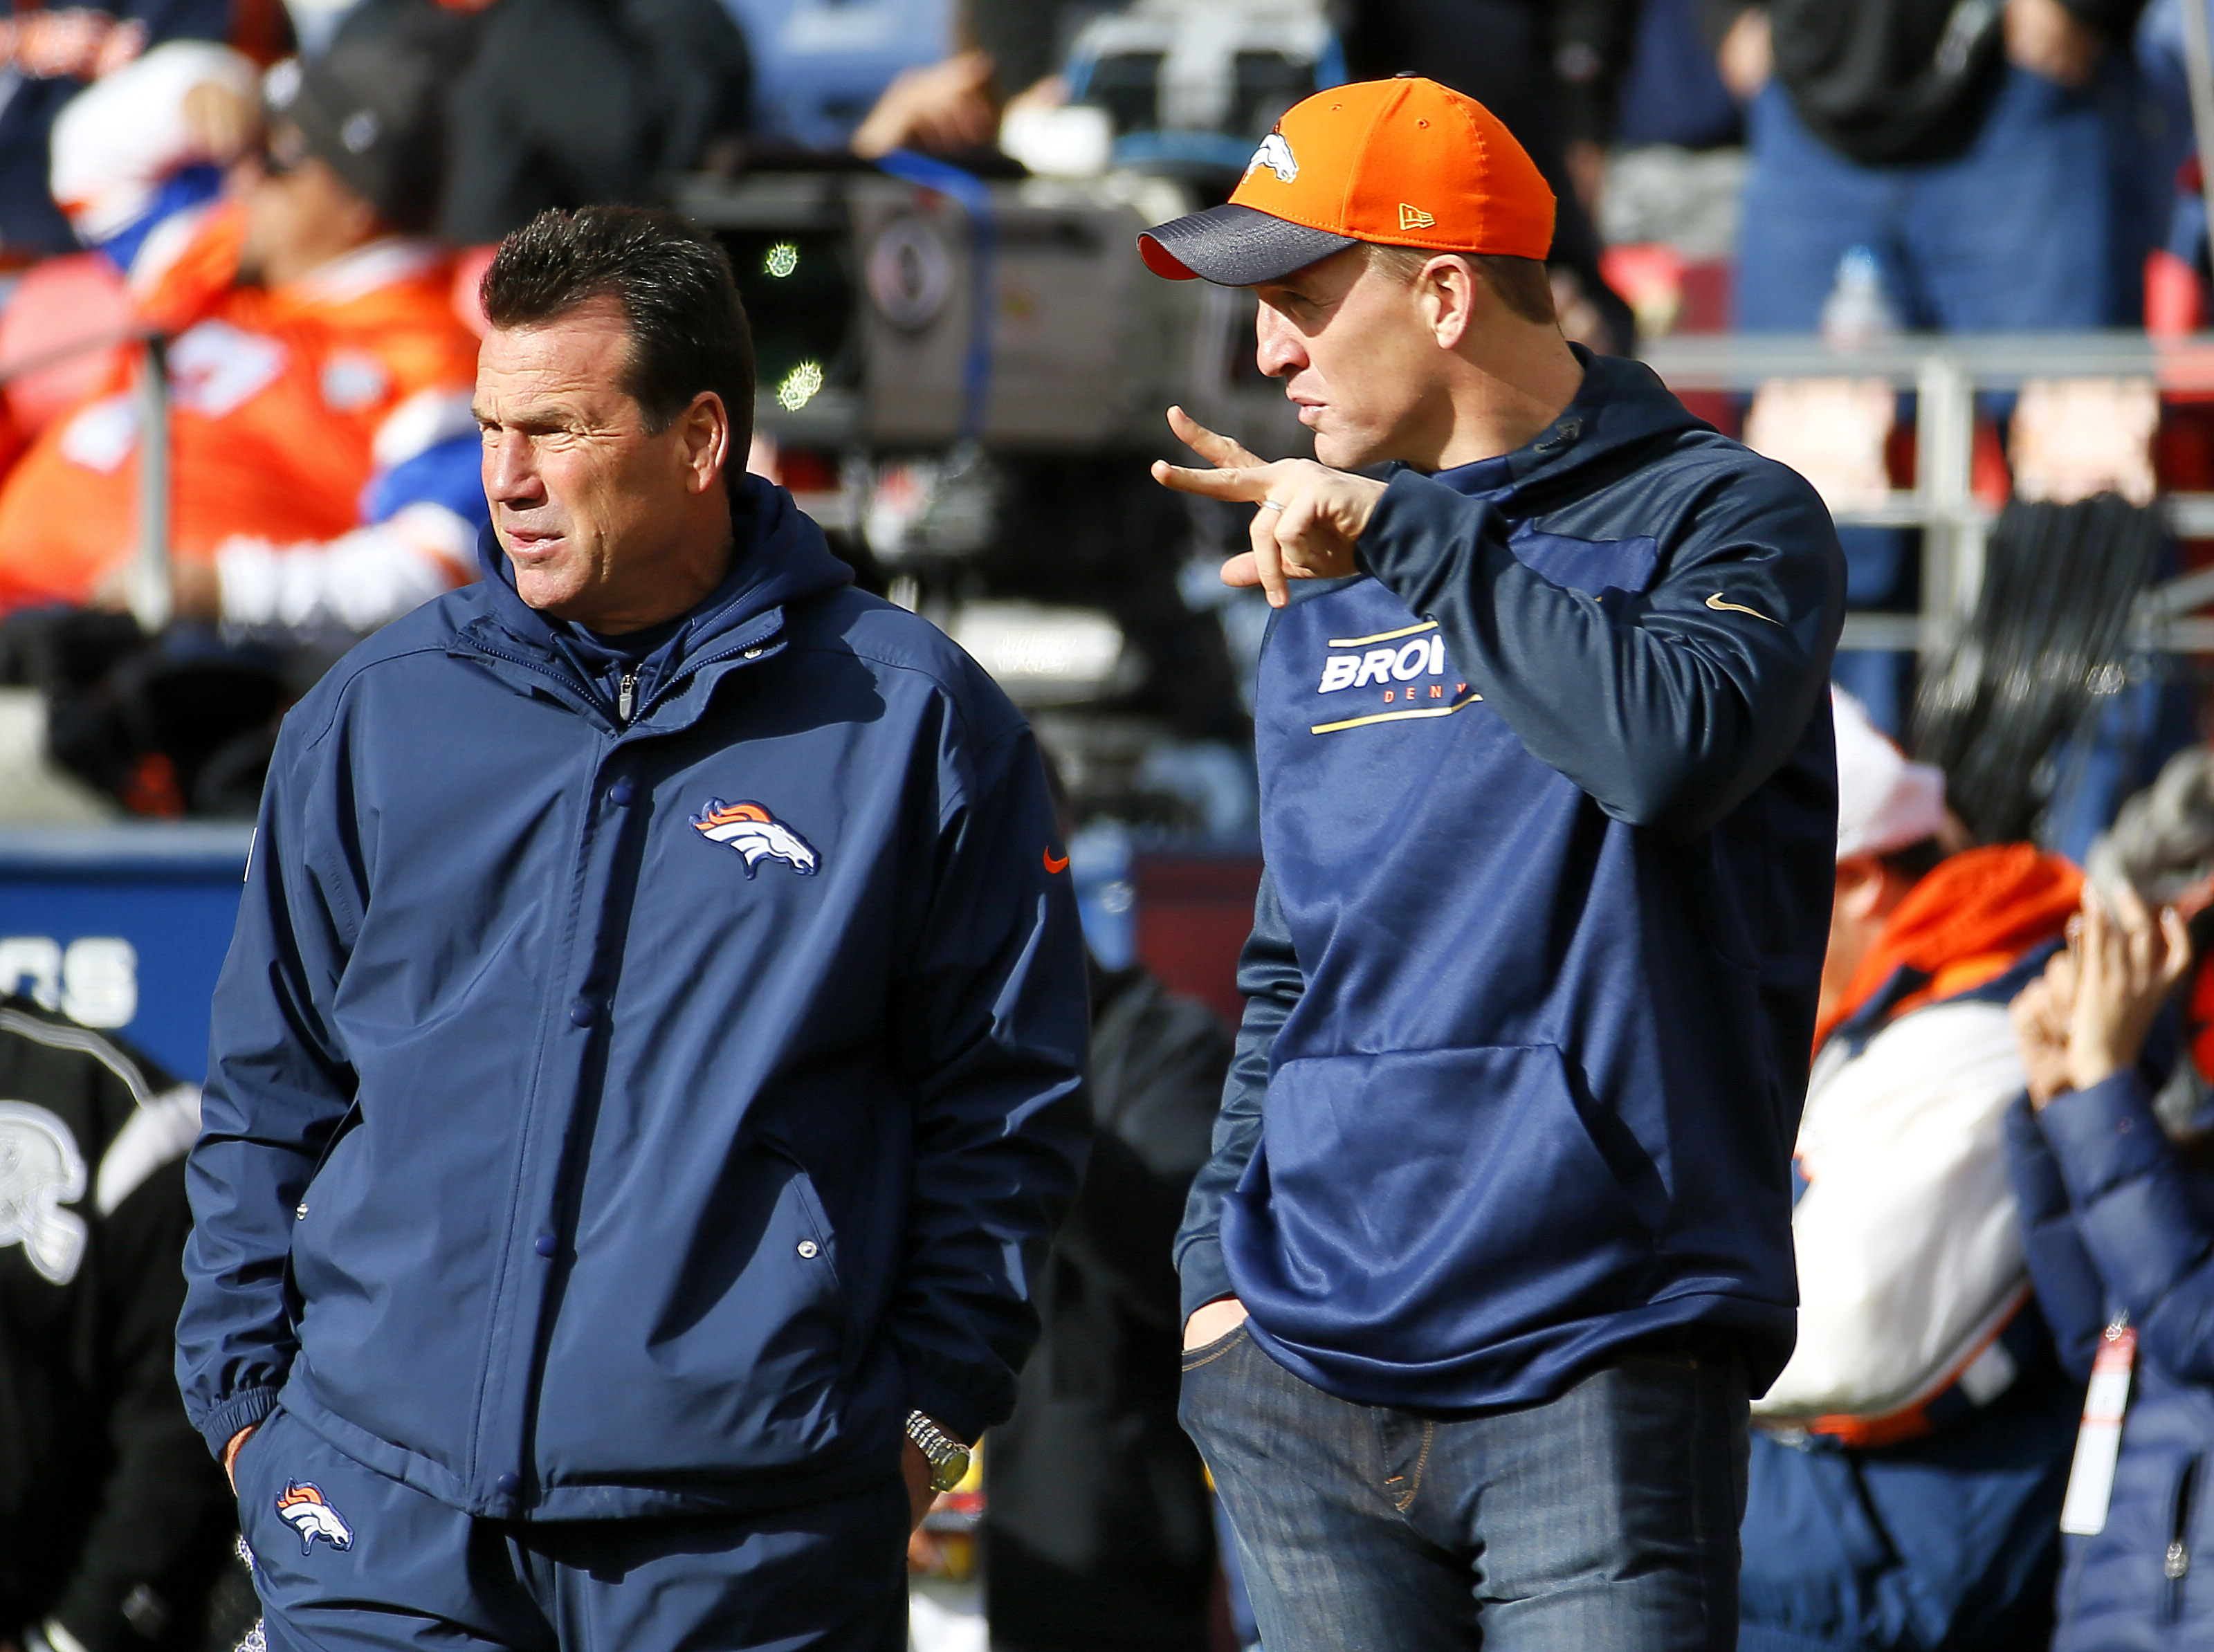 Denver Broncos quarterback Peyton Manning, right, watches warm ups with Denver Broncos head coach Gary Kubiak prior to an NFL football game against the Oakland Raiders, Sunday, Dec. 13, 2015, in Denver. (AP Photo/Jack Dempsey)